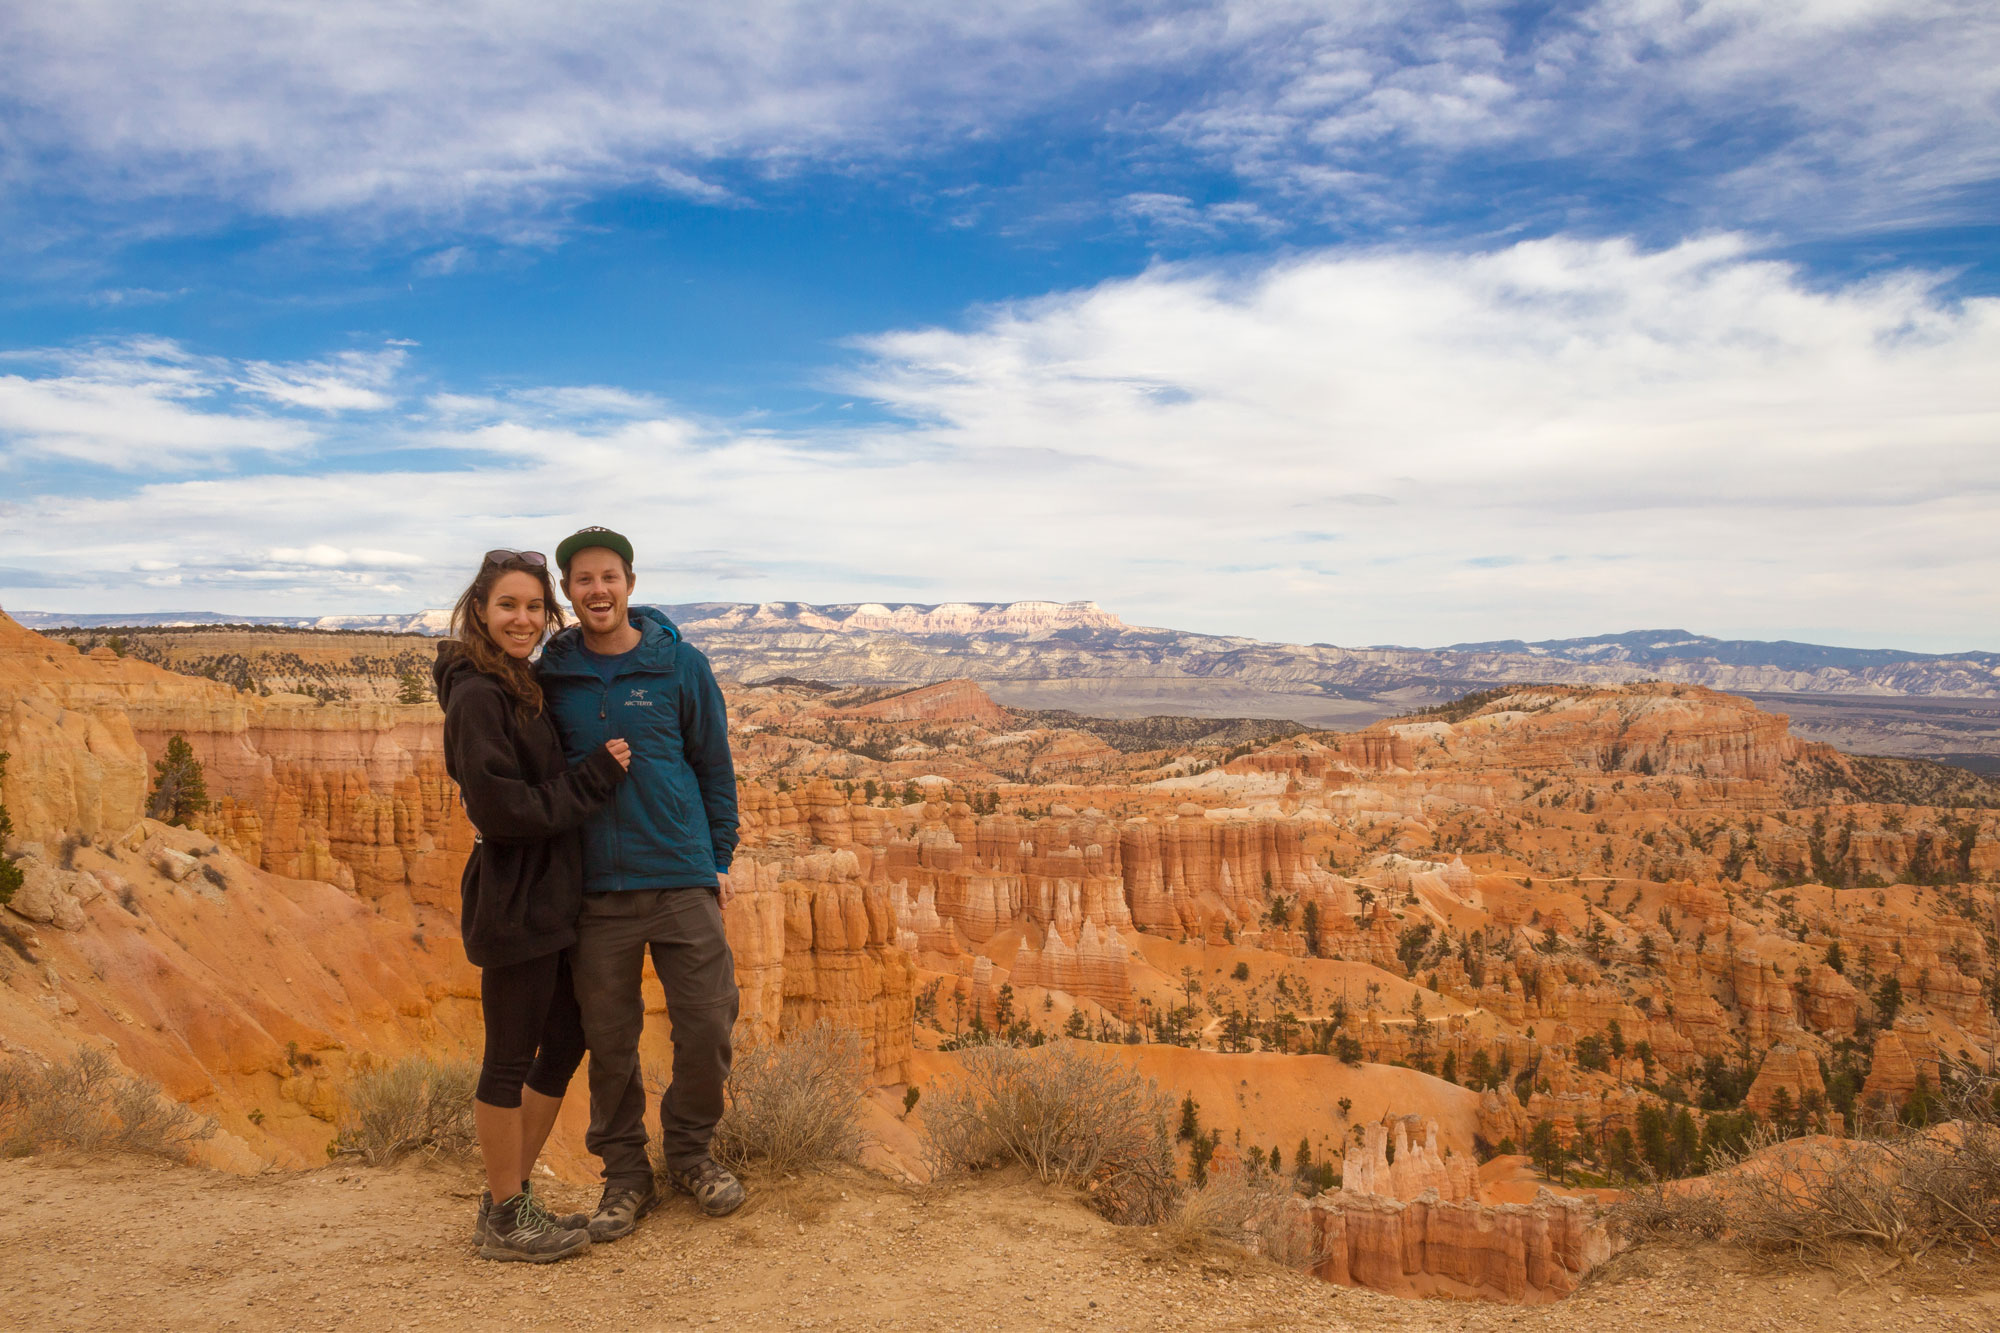 Sunset-Point-at-Bryce-Canyon-National-Park